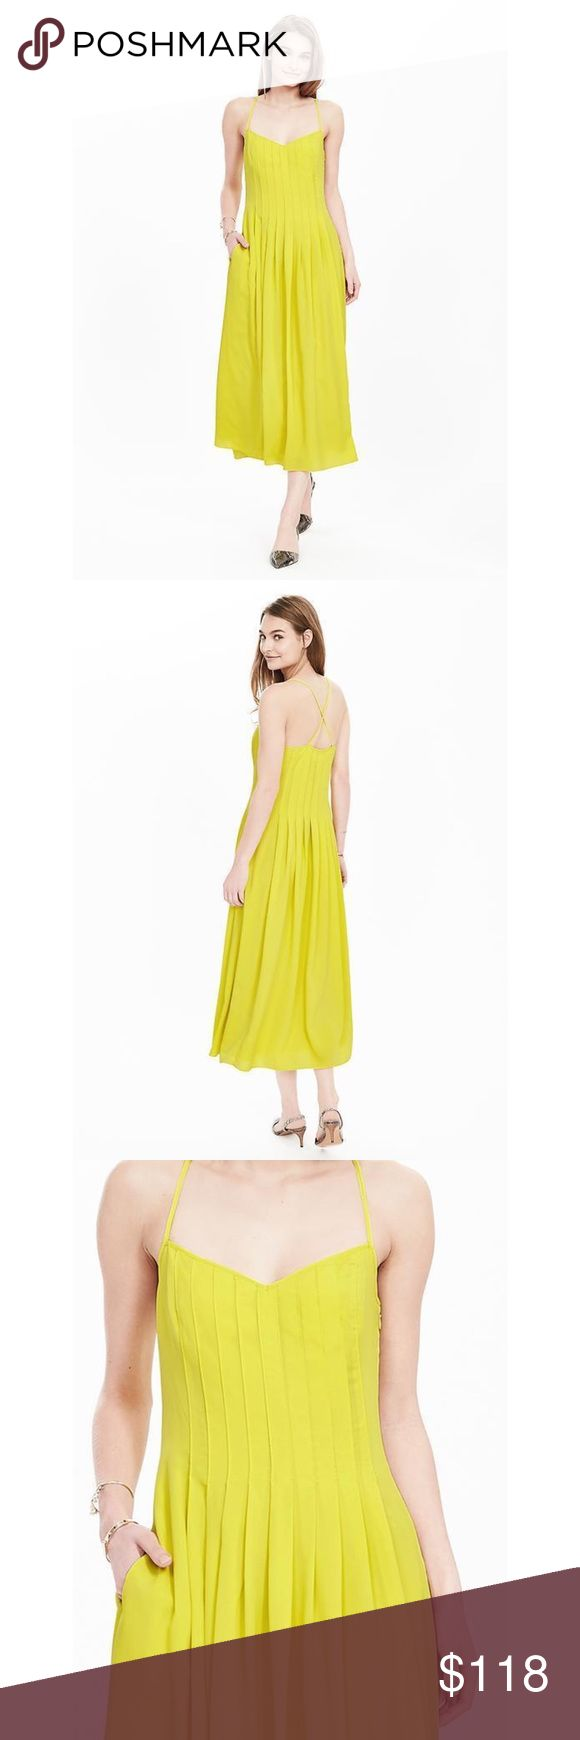 Banana Republic pintuck maxi dress - neon yellow Banana Republic pintuck maxi dress - neon yellow. NWT! Features strappy back, pleated bodice, drop waist and pockets! True to size. Banana Republic Dresses